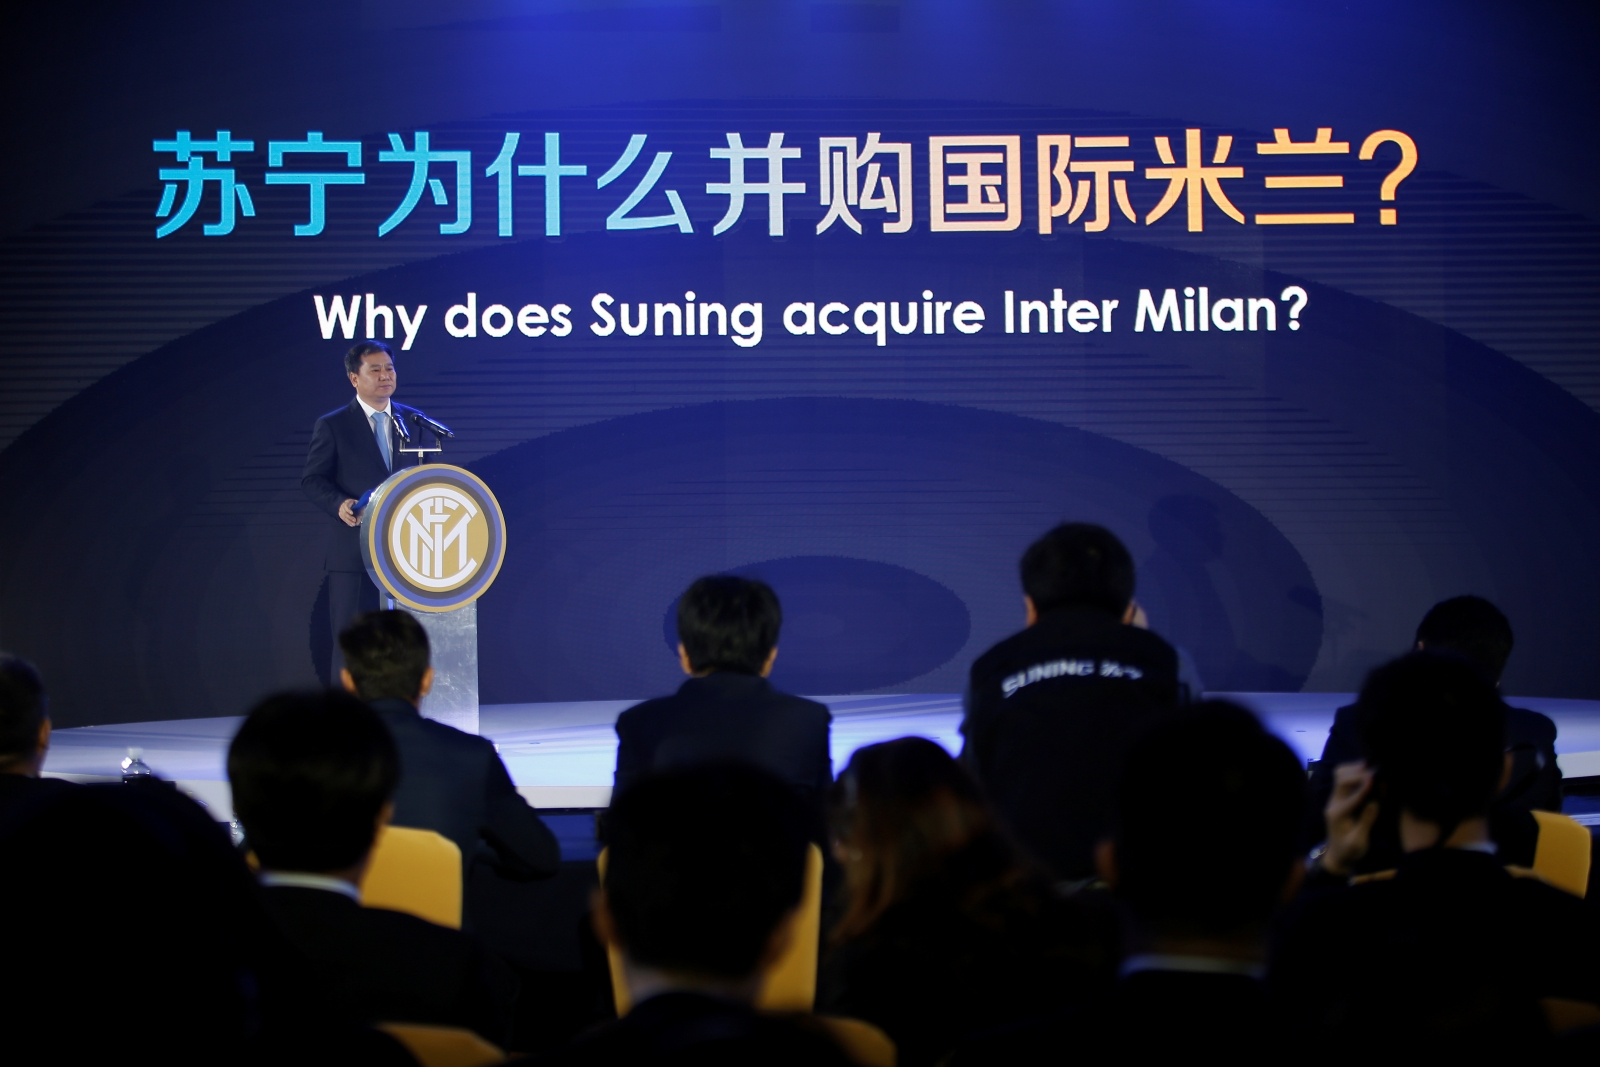 Inter Milan football club's majority stake to be acquired by Chinese appliance retailer Suning